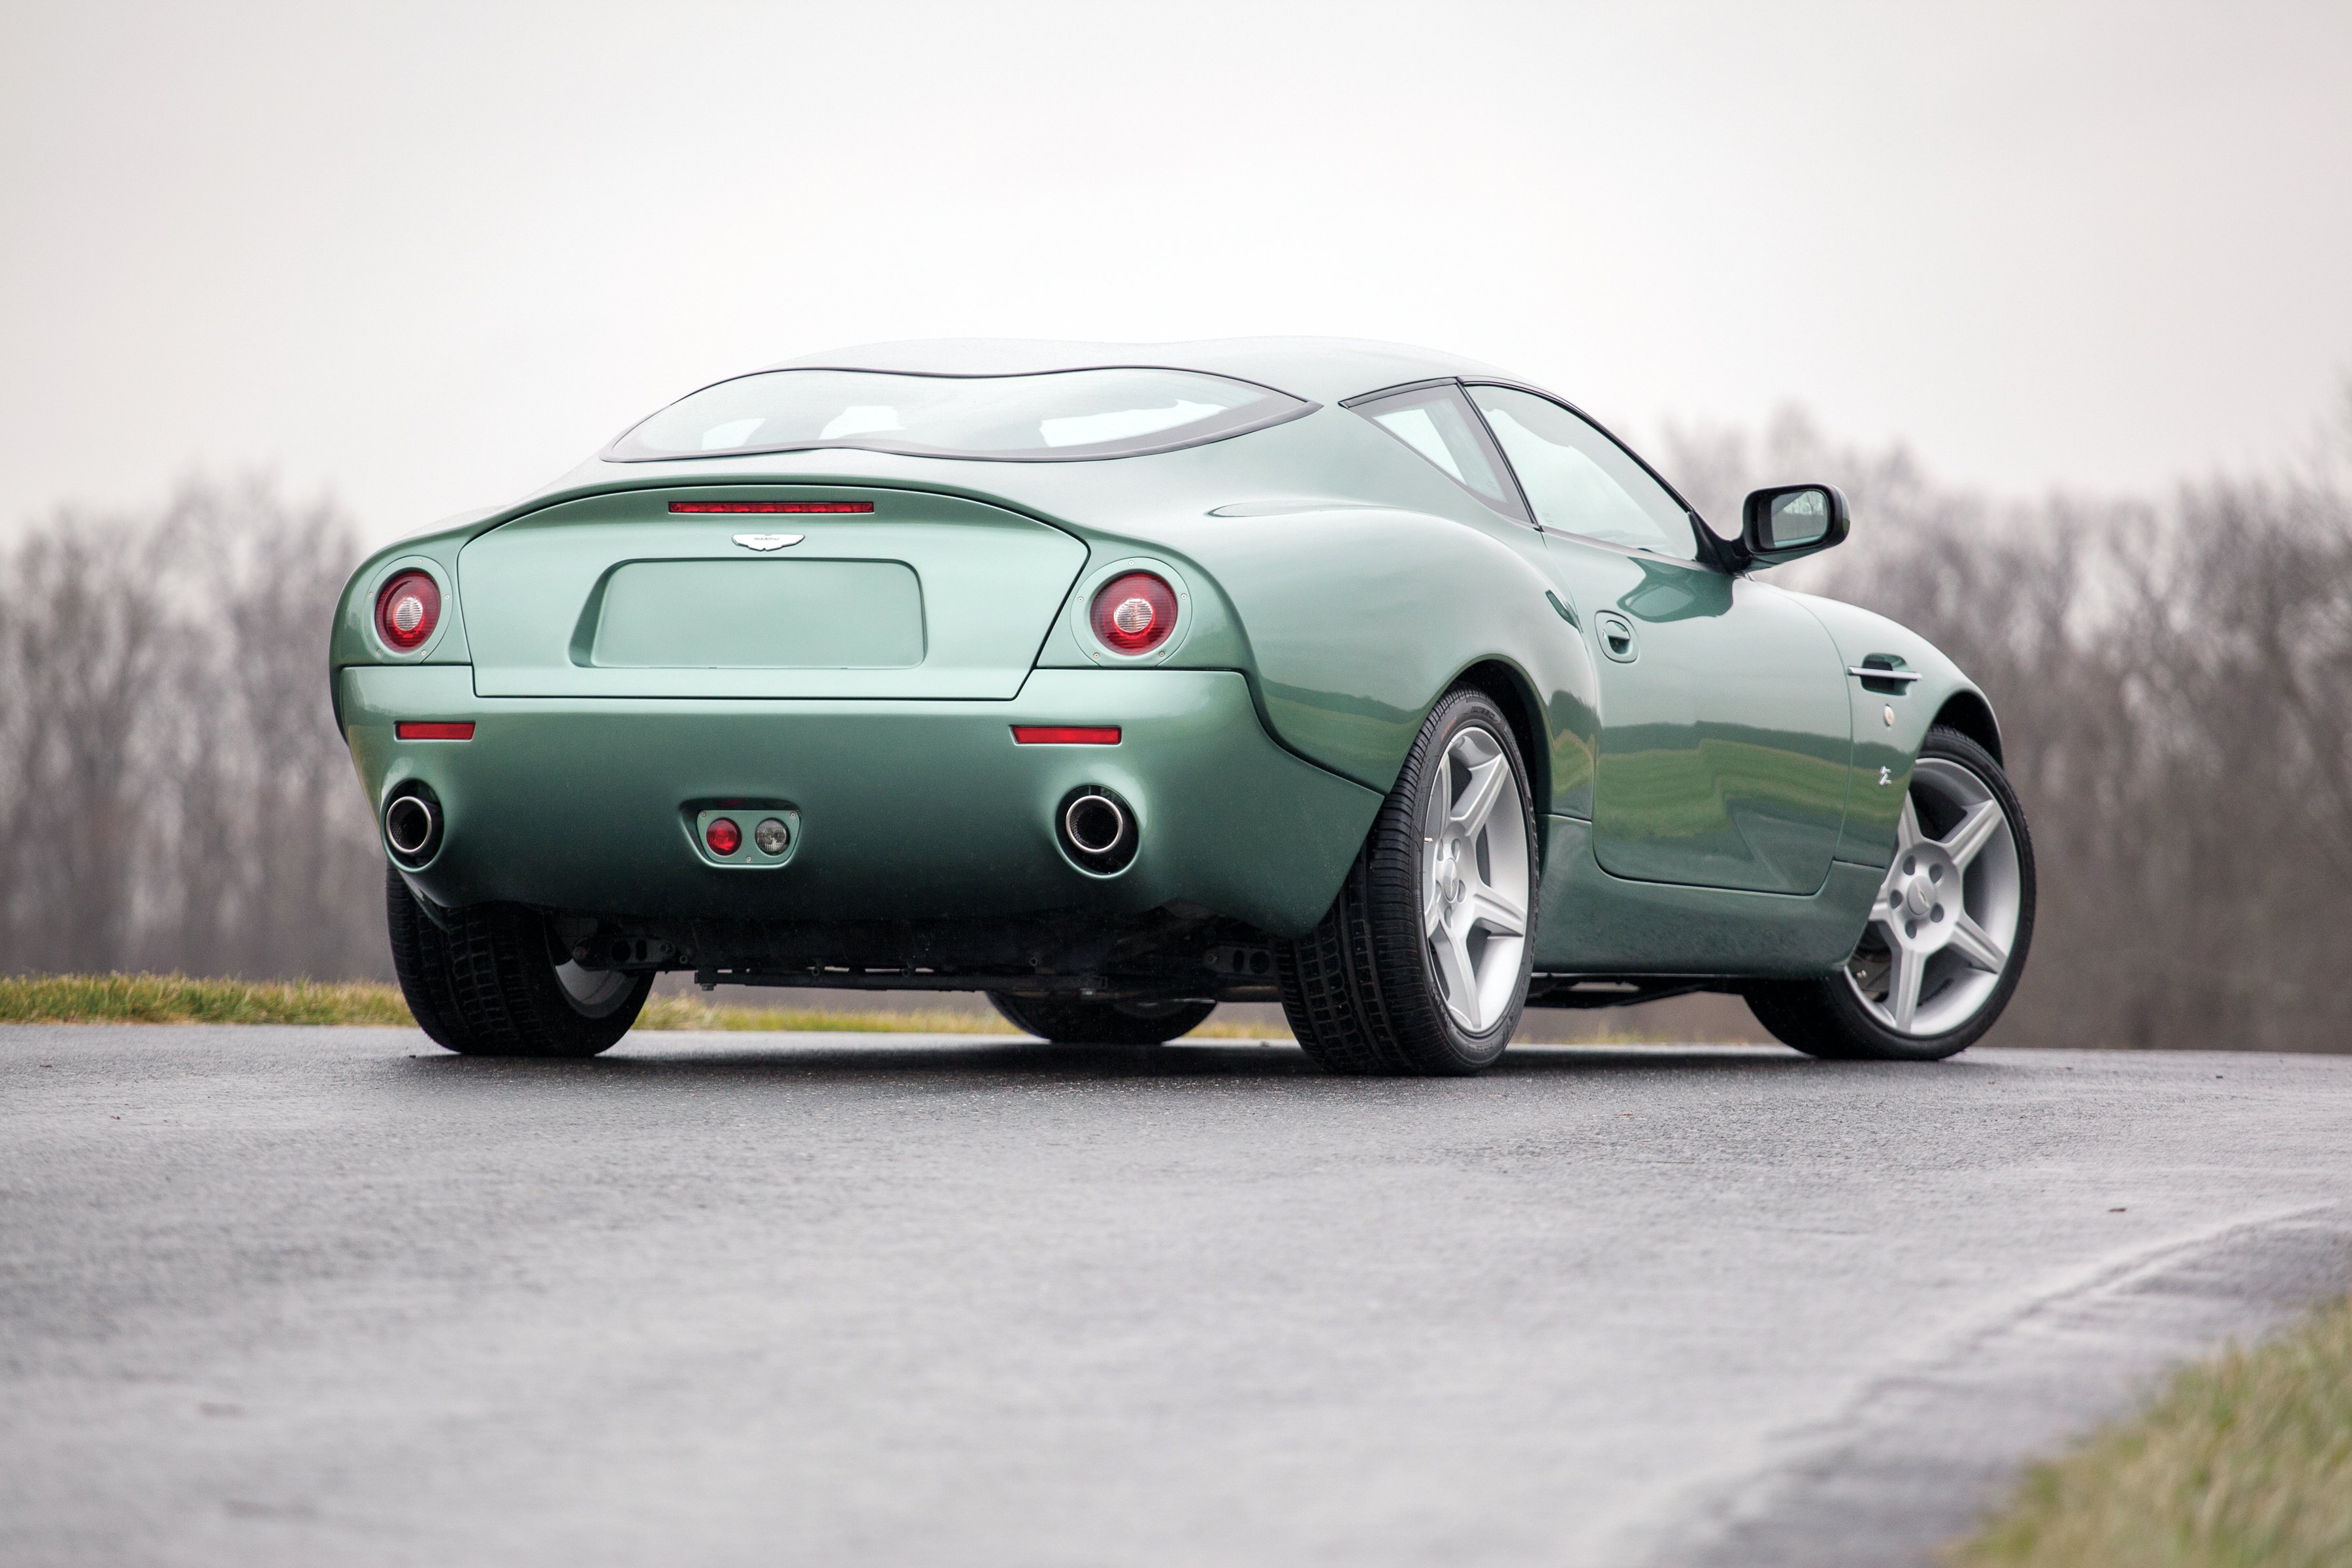 2003 Aston Martin Db7 Zagato Wallpapers Hd Desktop And Mobile Backgrounds